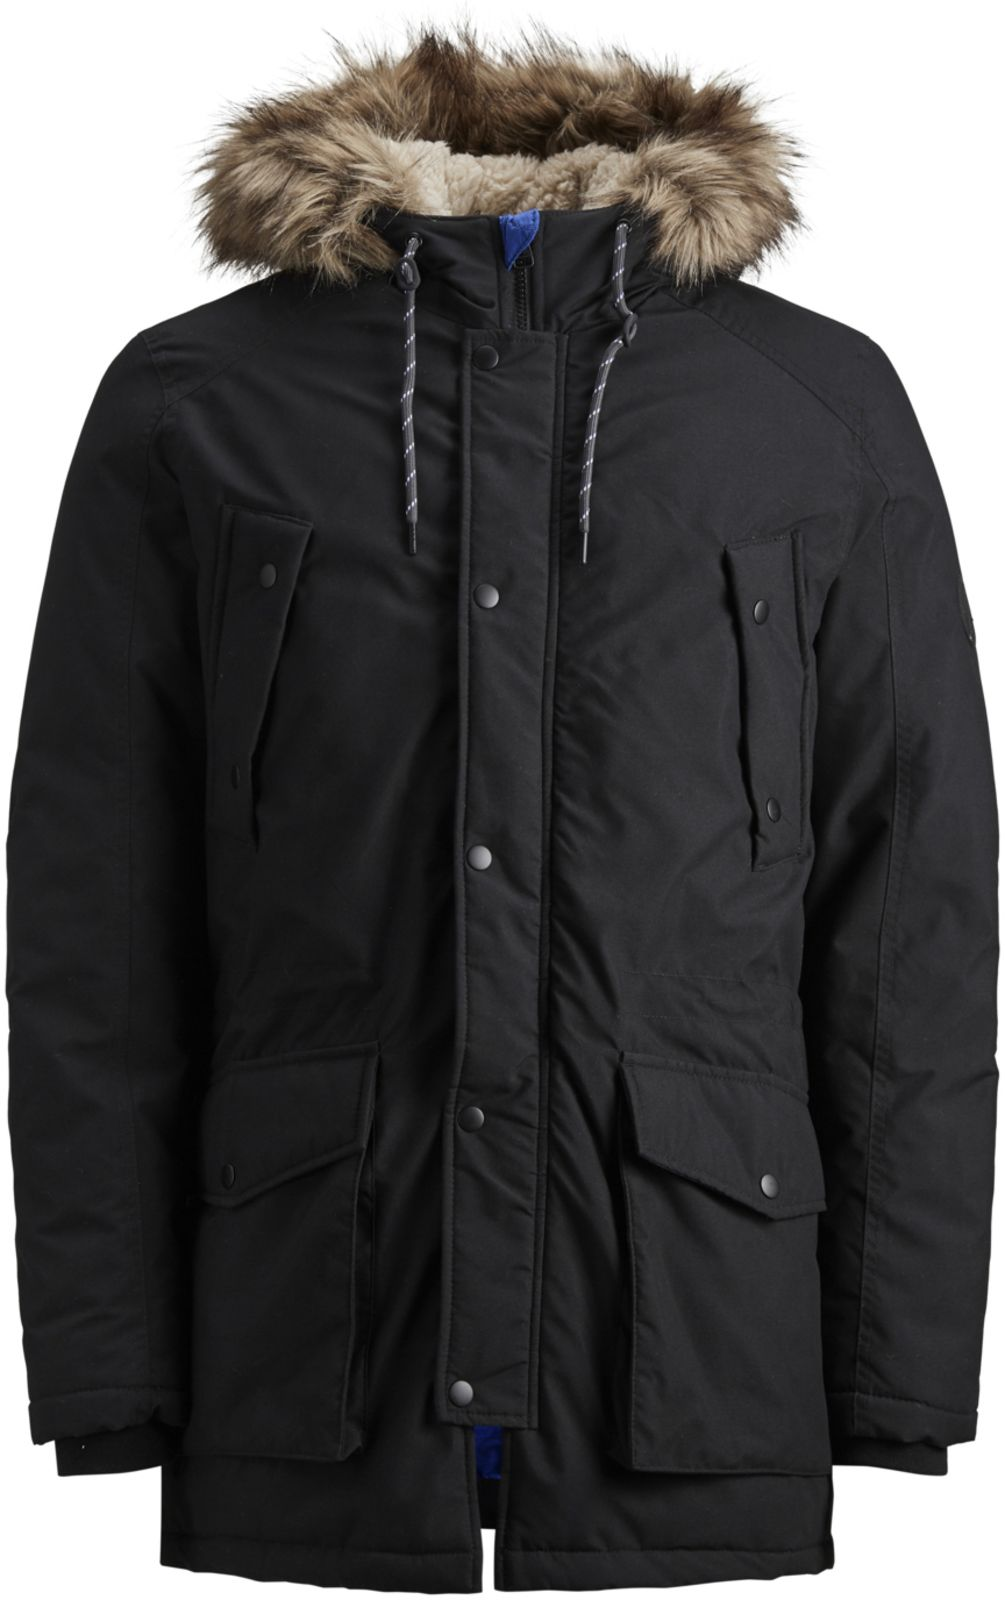 Jack & Jones Explore Parka Jacket Black